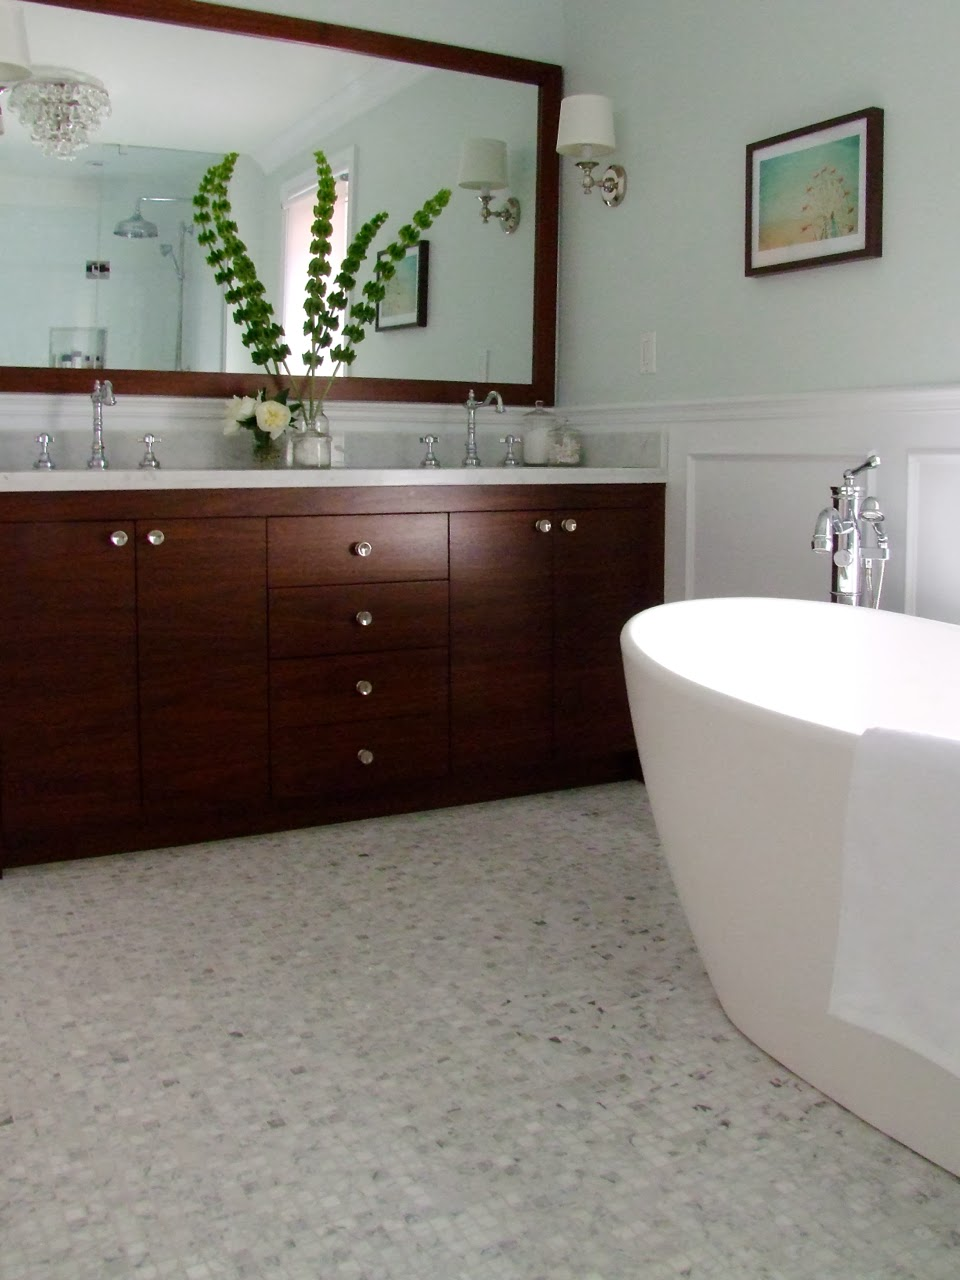 Creed janice 39 s bathroom before after photos for Carole kitchen and bath design ma